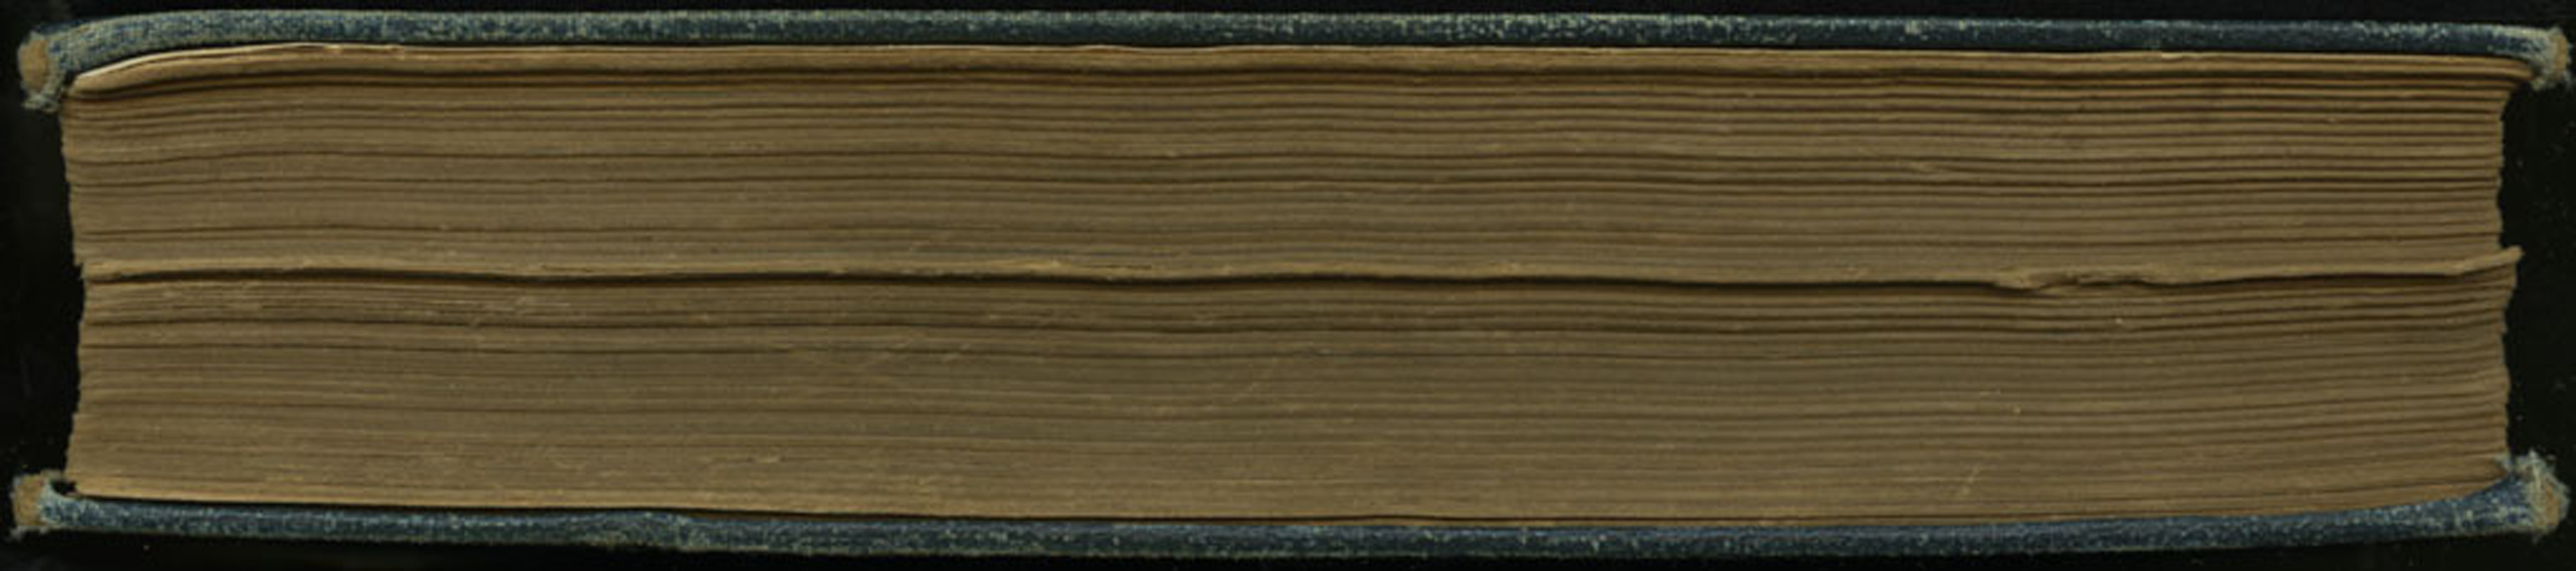 Fore-edge of the 1891 James Nisbet Edition